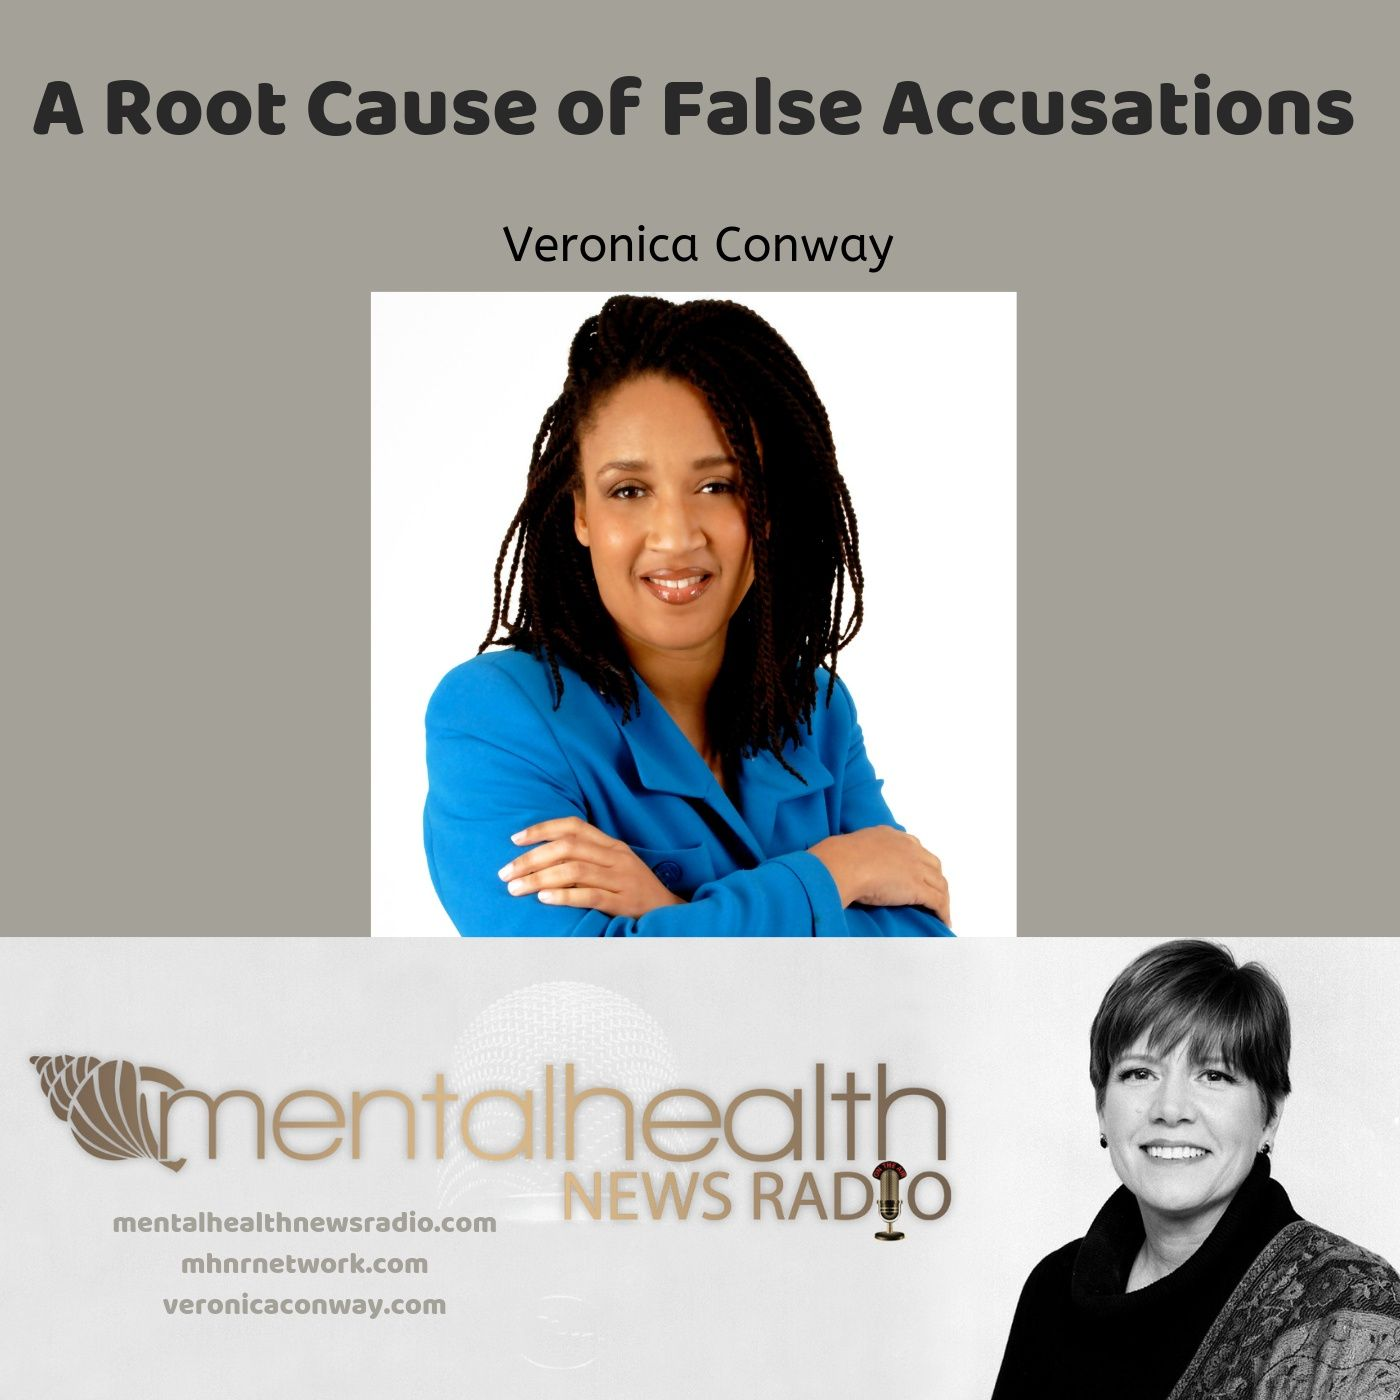 Mental Health News Radio - A Root Cause of False Accusations with Veronica Conway